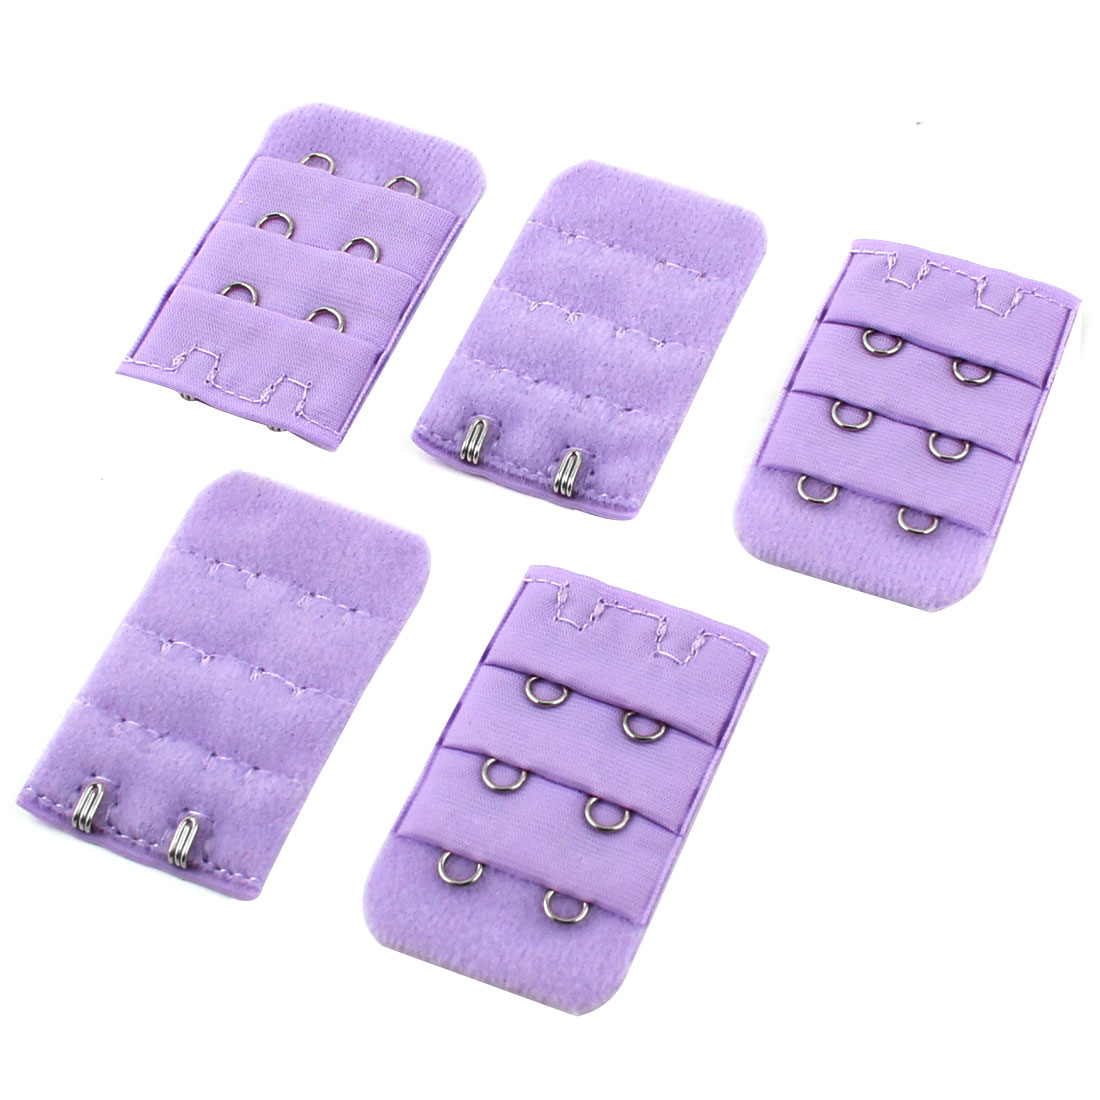 5PCS 2 x 3 Hooks Adjustable Buckle Brassiere Bra Strap Extending Hook Purple